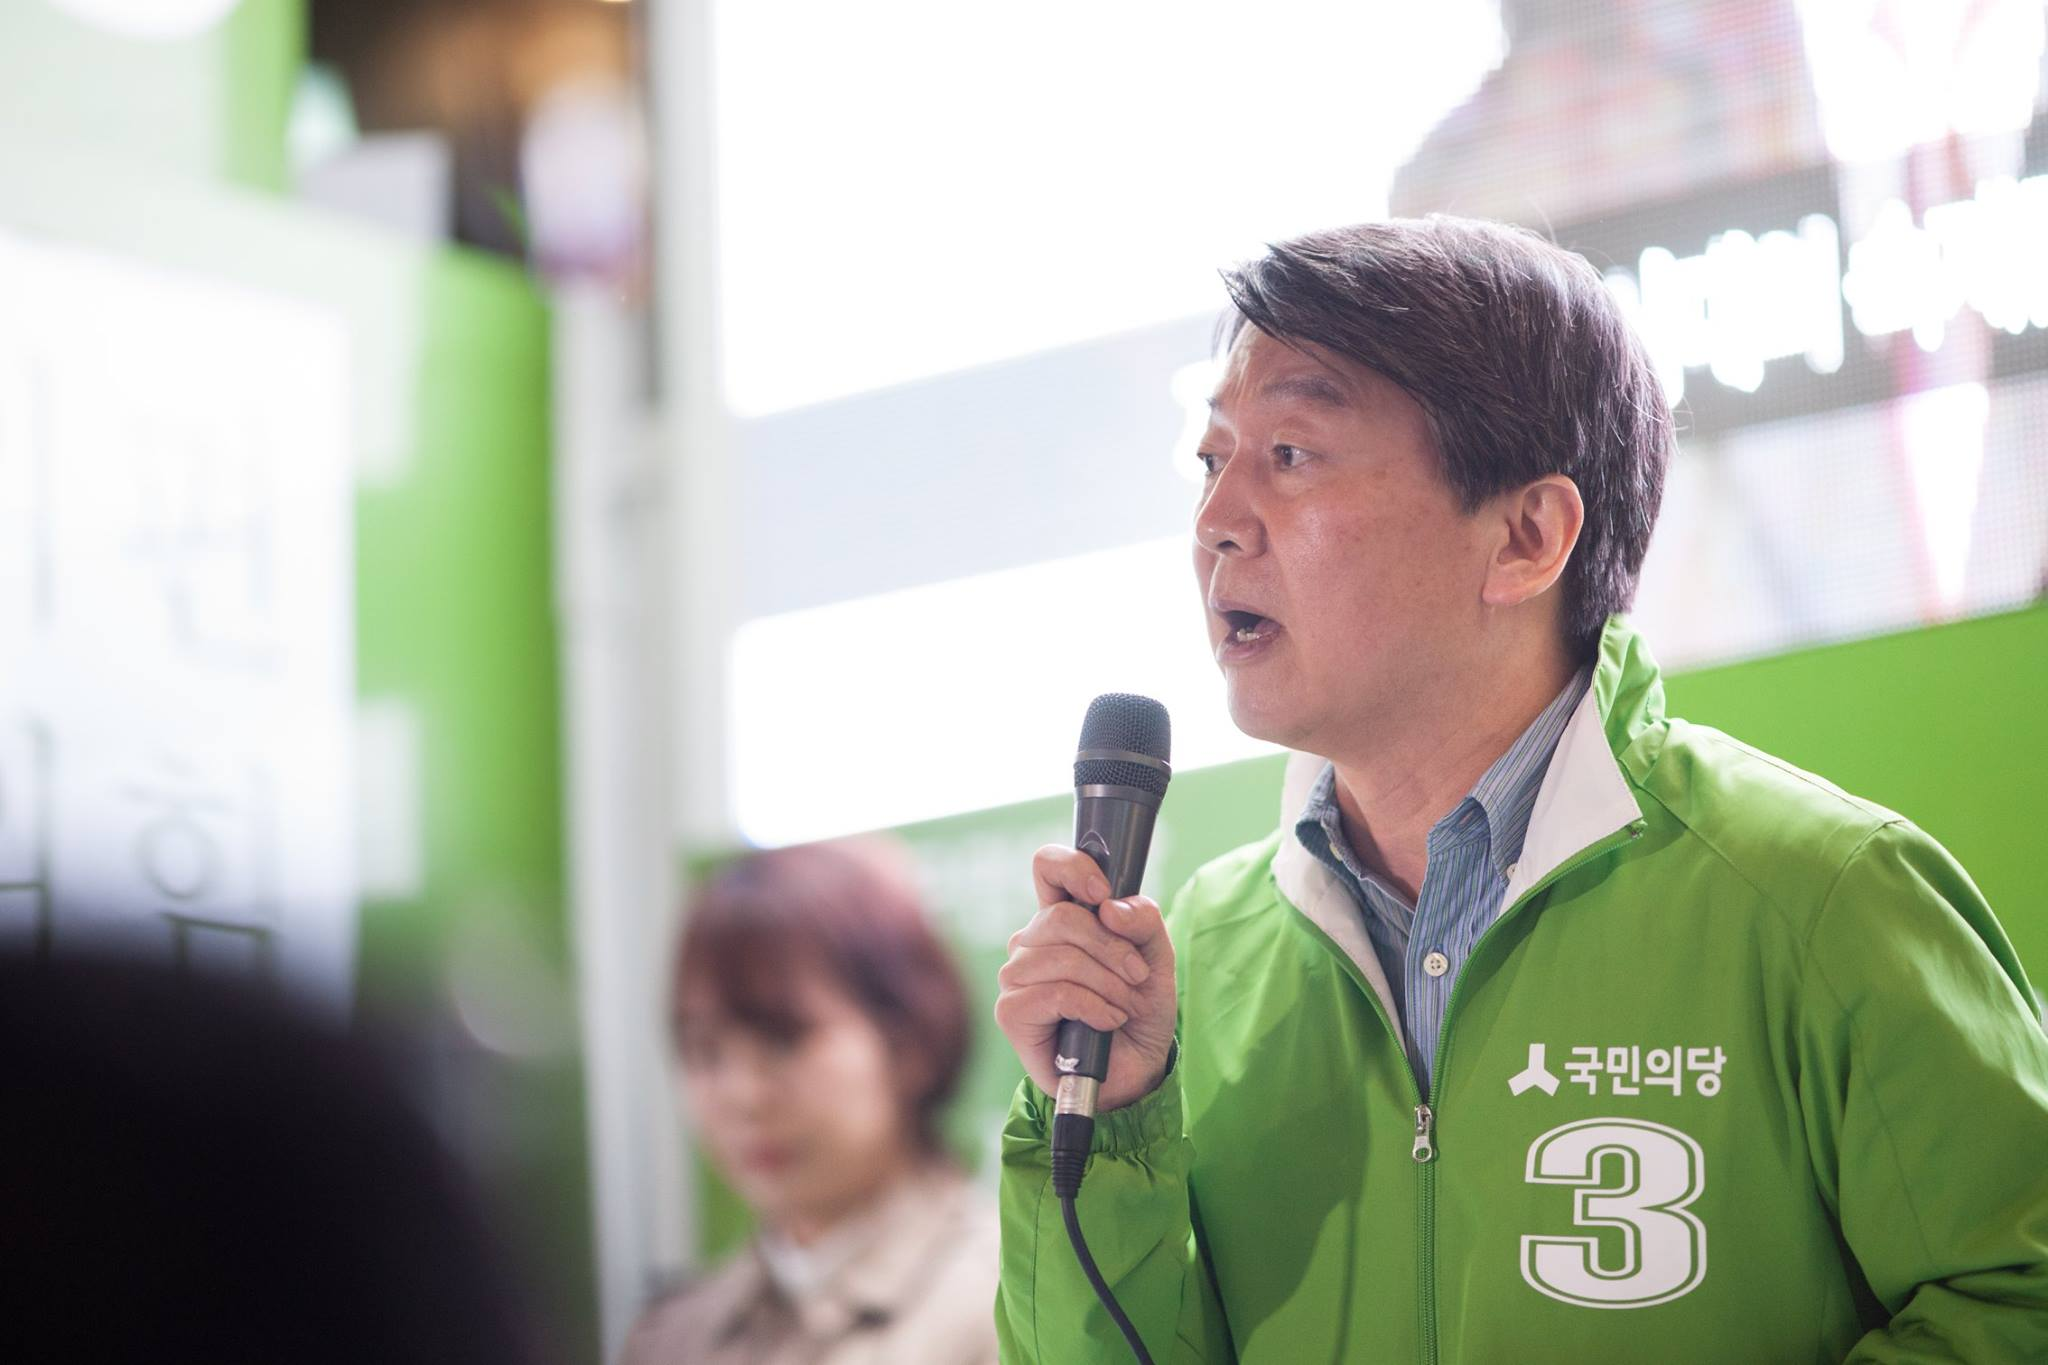 Political neophyte Ahn Cheol-soo could once again play spoiler in the 2017 presidential race. (Facebook)